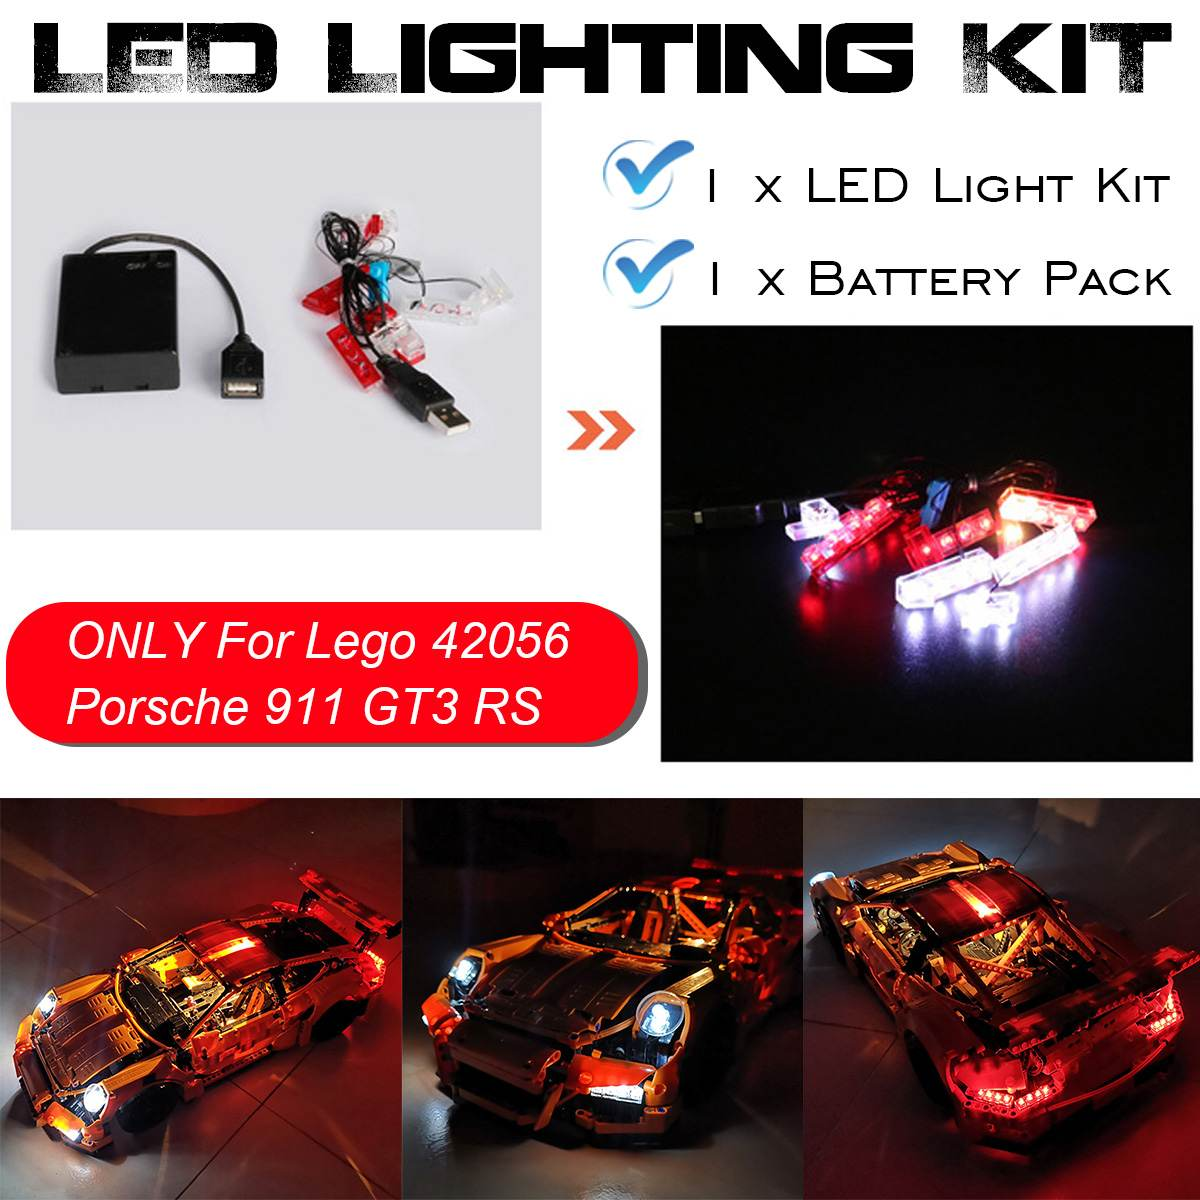 LED Lighting Kit for Lego for 42056 for Porsche 911 GT3 RS Toy Bricks Car Lighting Parts Powered by USB ( Model Not Included ) 5